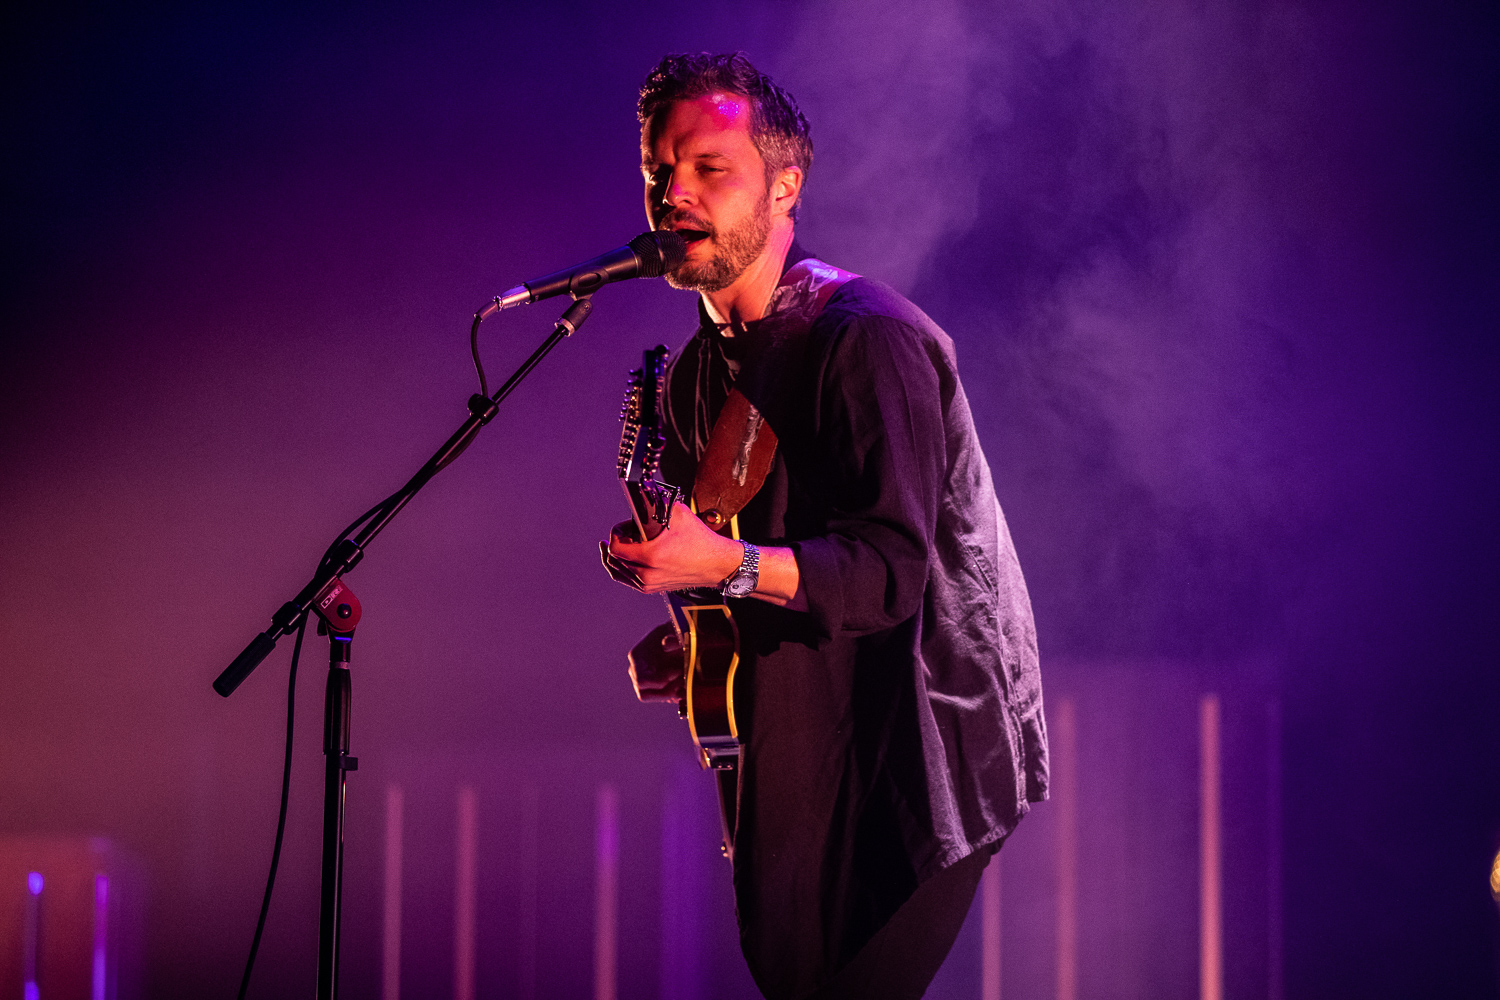 Kristian Matsson sings during a performance by The Tallest Man On Earth at the Englert Theater on Thursday, May 2, 2019. Matsson, the brain behind The Tallest Man on Earth, released his latest album I Love You. It's a Fever Dream. released on April 19, 2019.